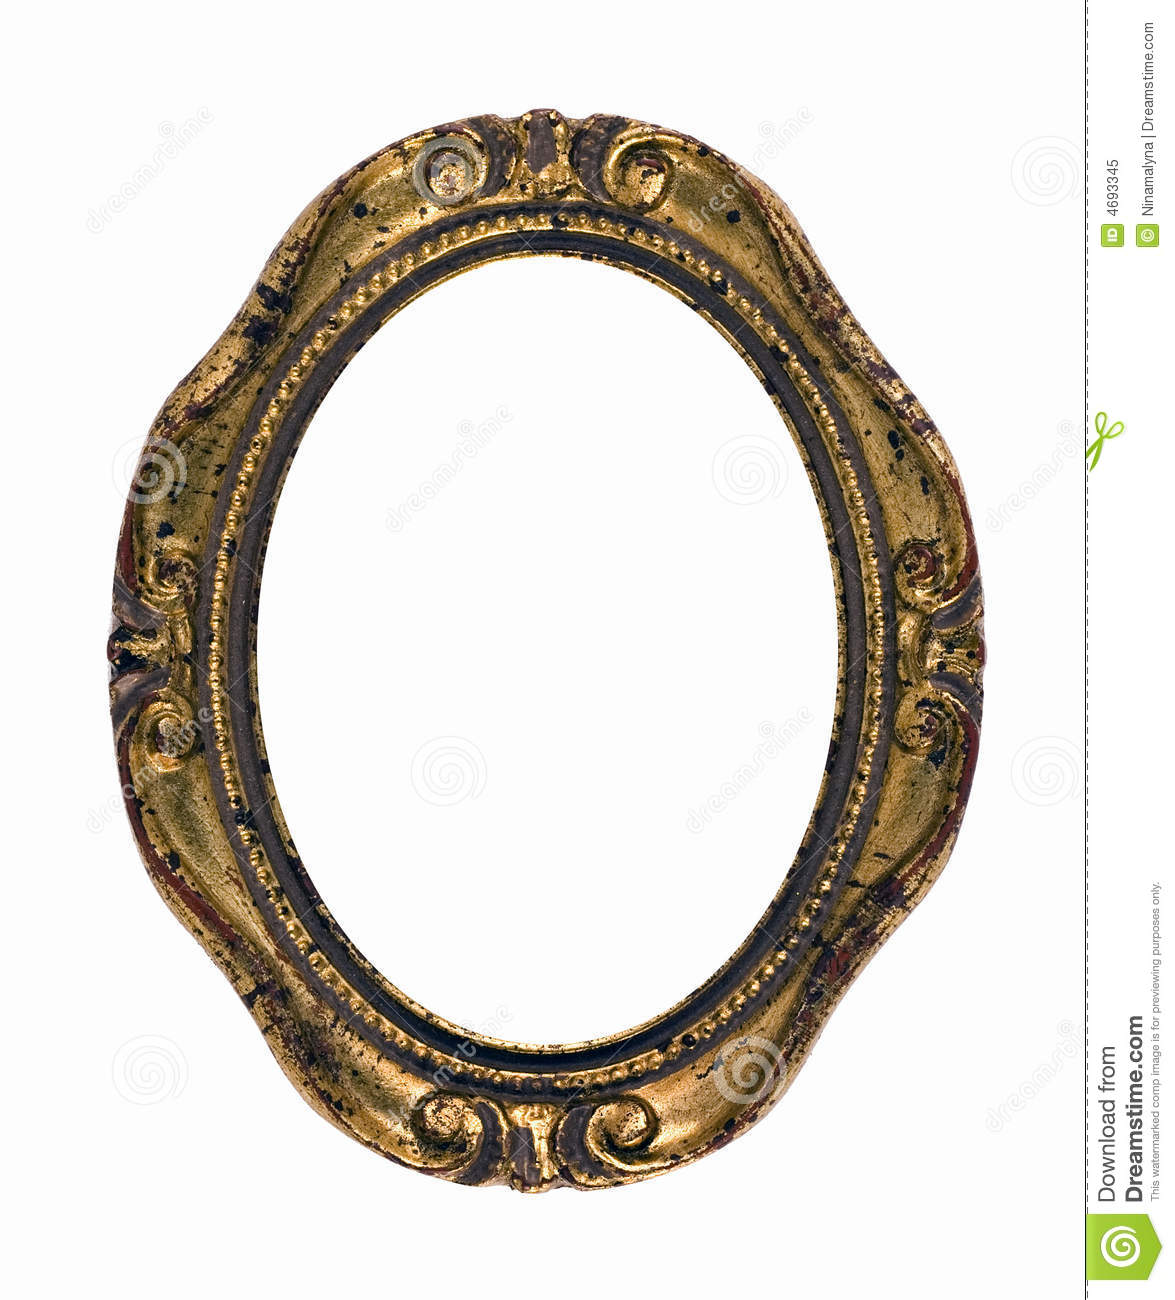 Vintage Rusty Gold Oval Frame Stock Image - Image of empty ...